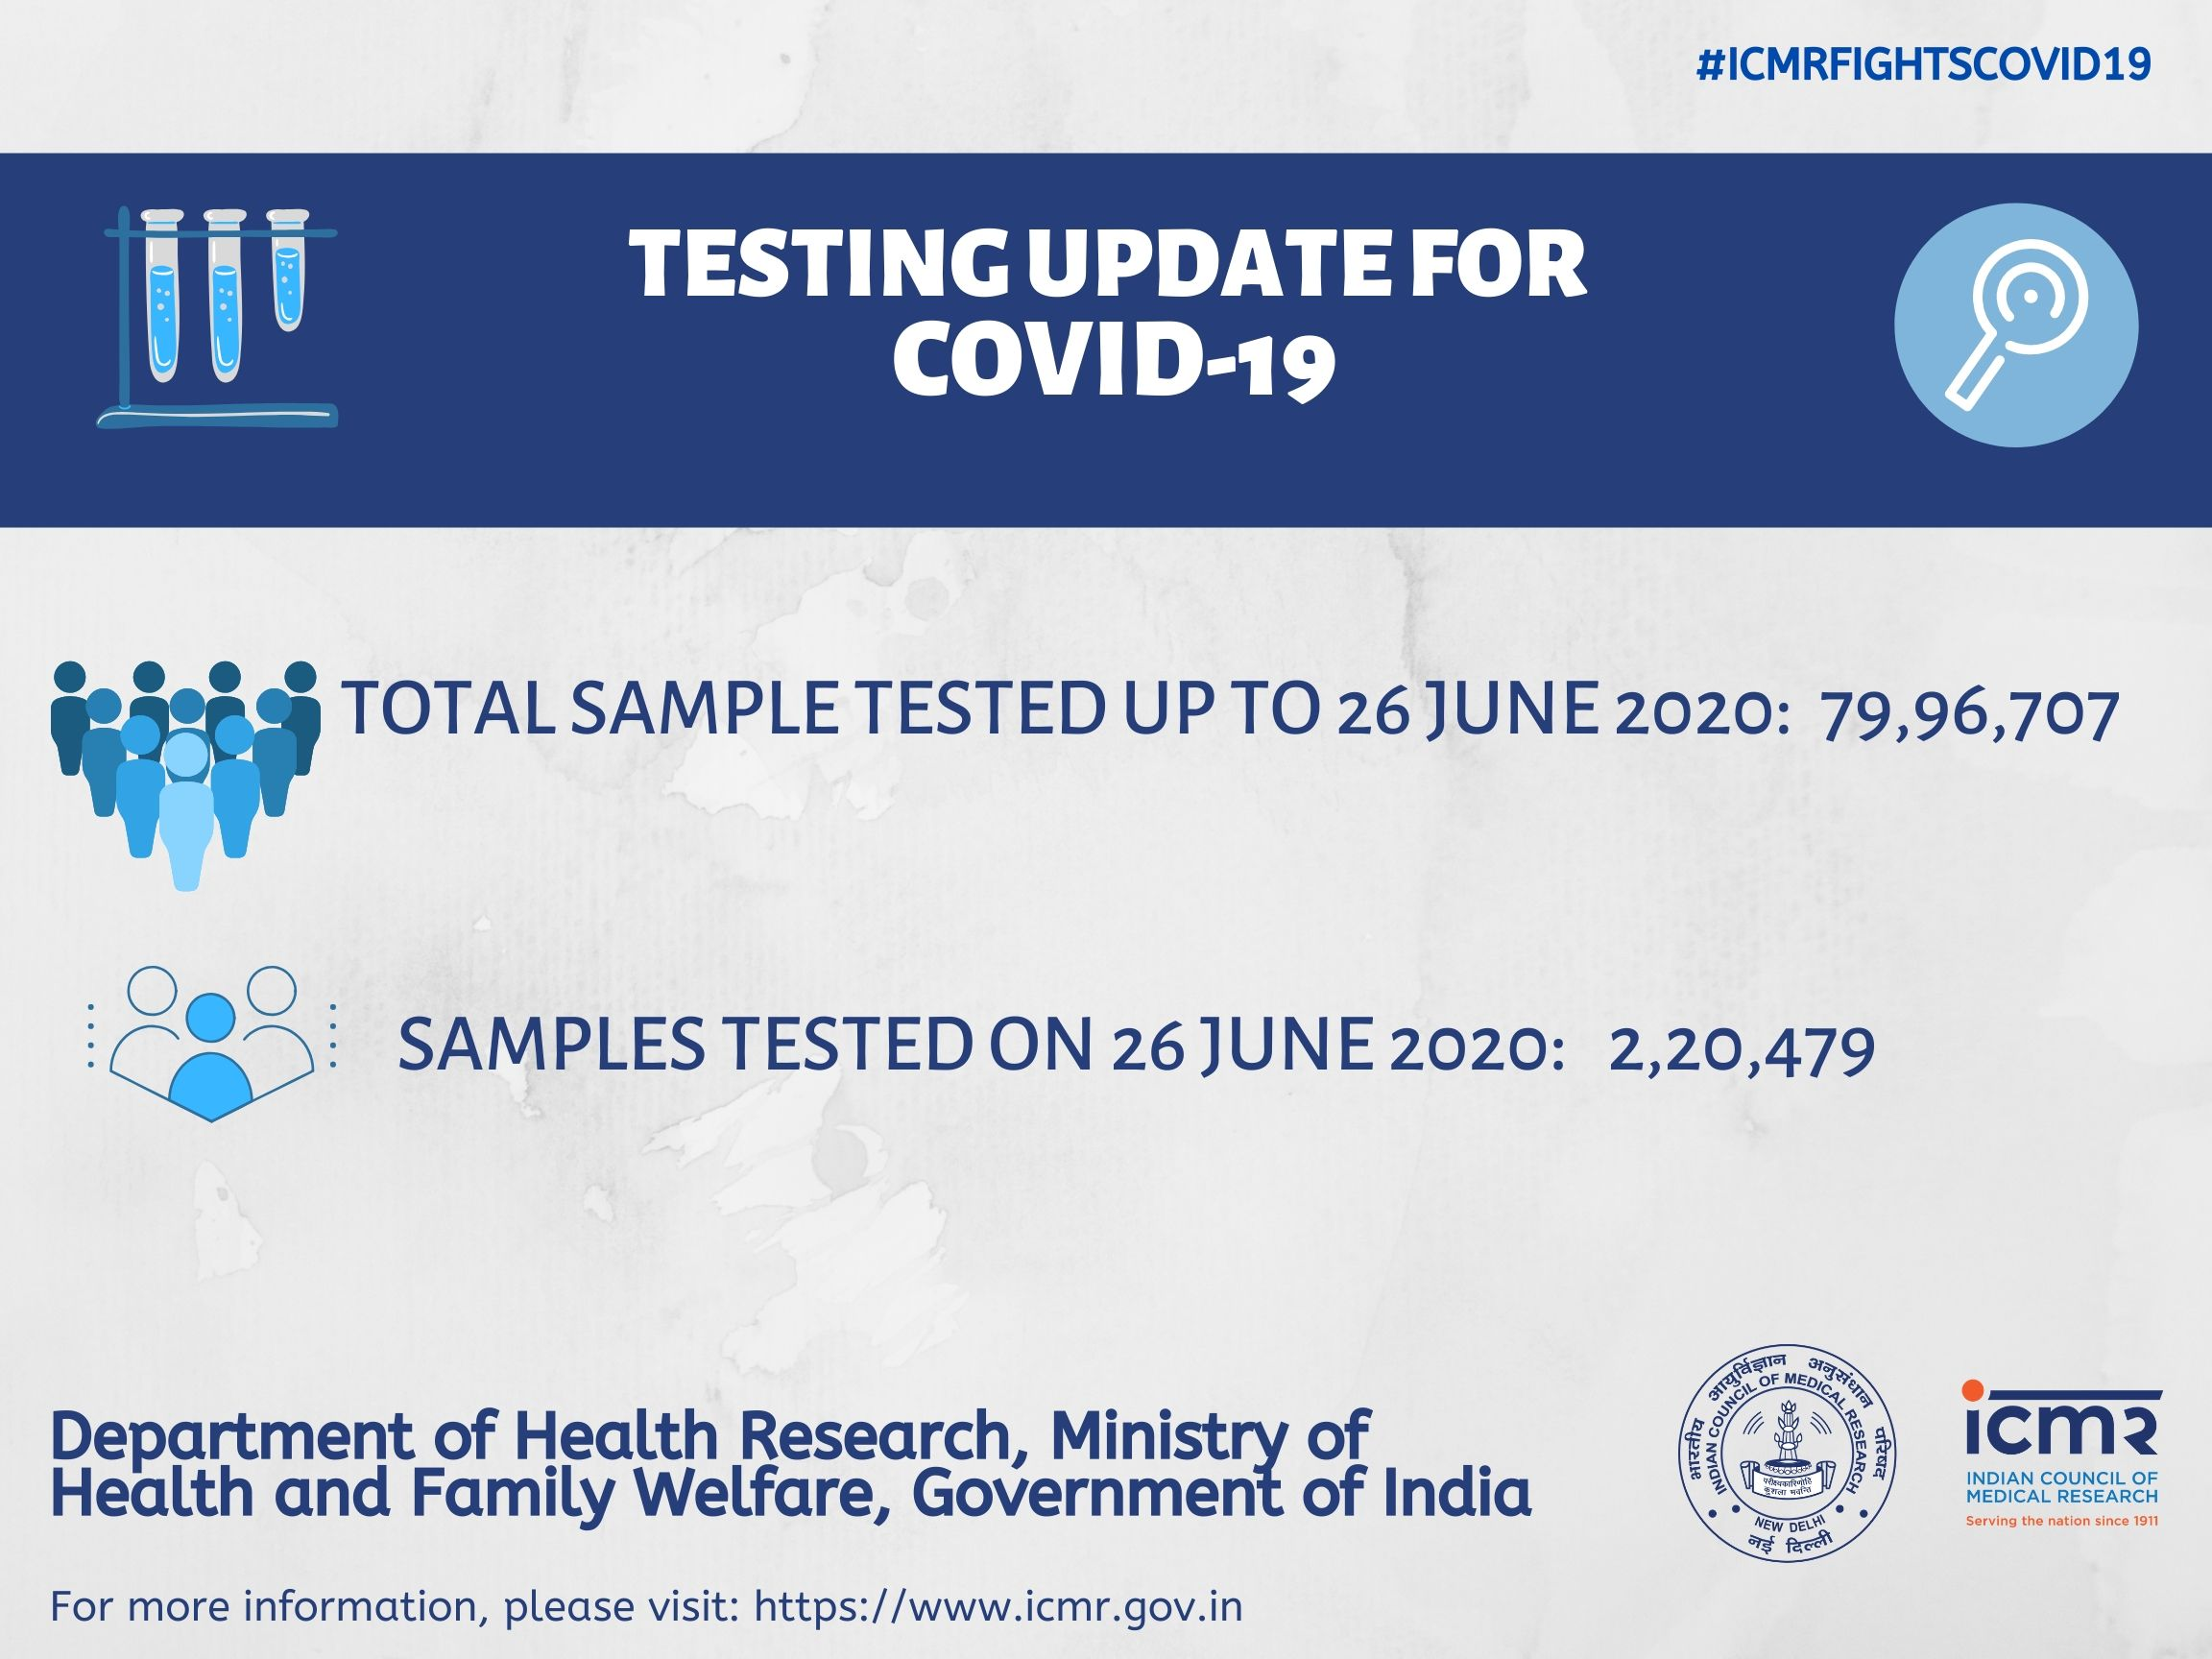 Maharashtra: 6,368 fresh Covid-19 cases in state, 167 deaths